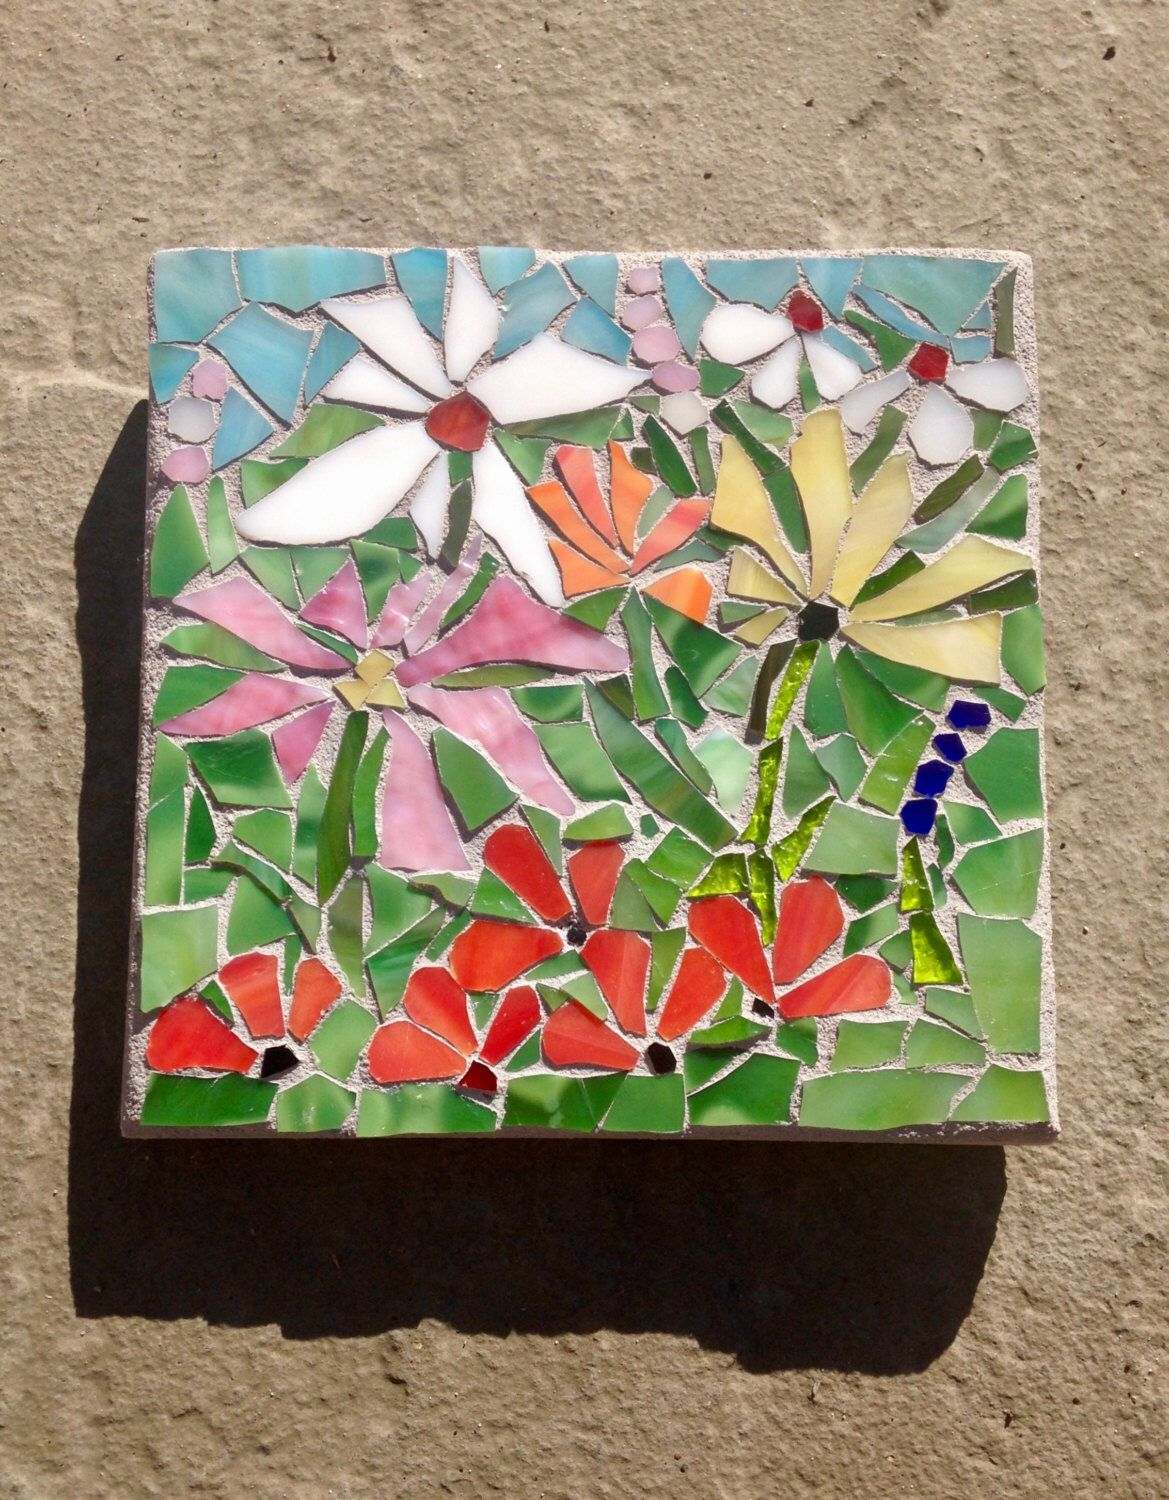 Stained Glass Mosaic Wall Art Sale Nature Flower Art Flower Wall Art Home Decor Mosaic Mosaics Glass Art Garden Mosaic Flowers Floral Mosaic Mosaic Art